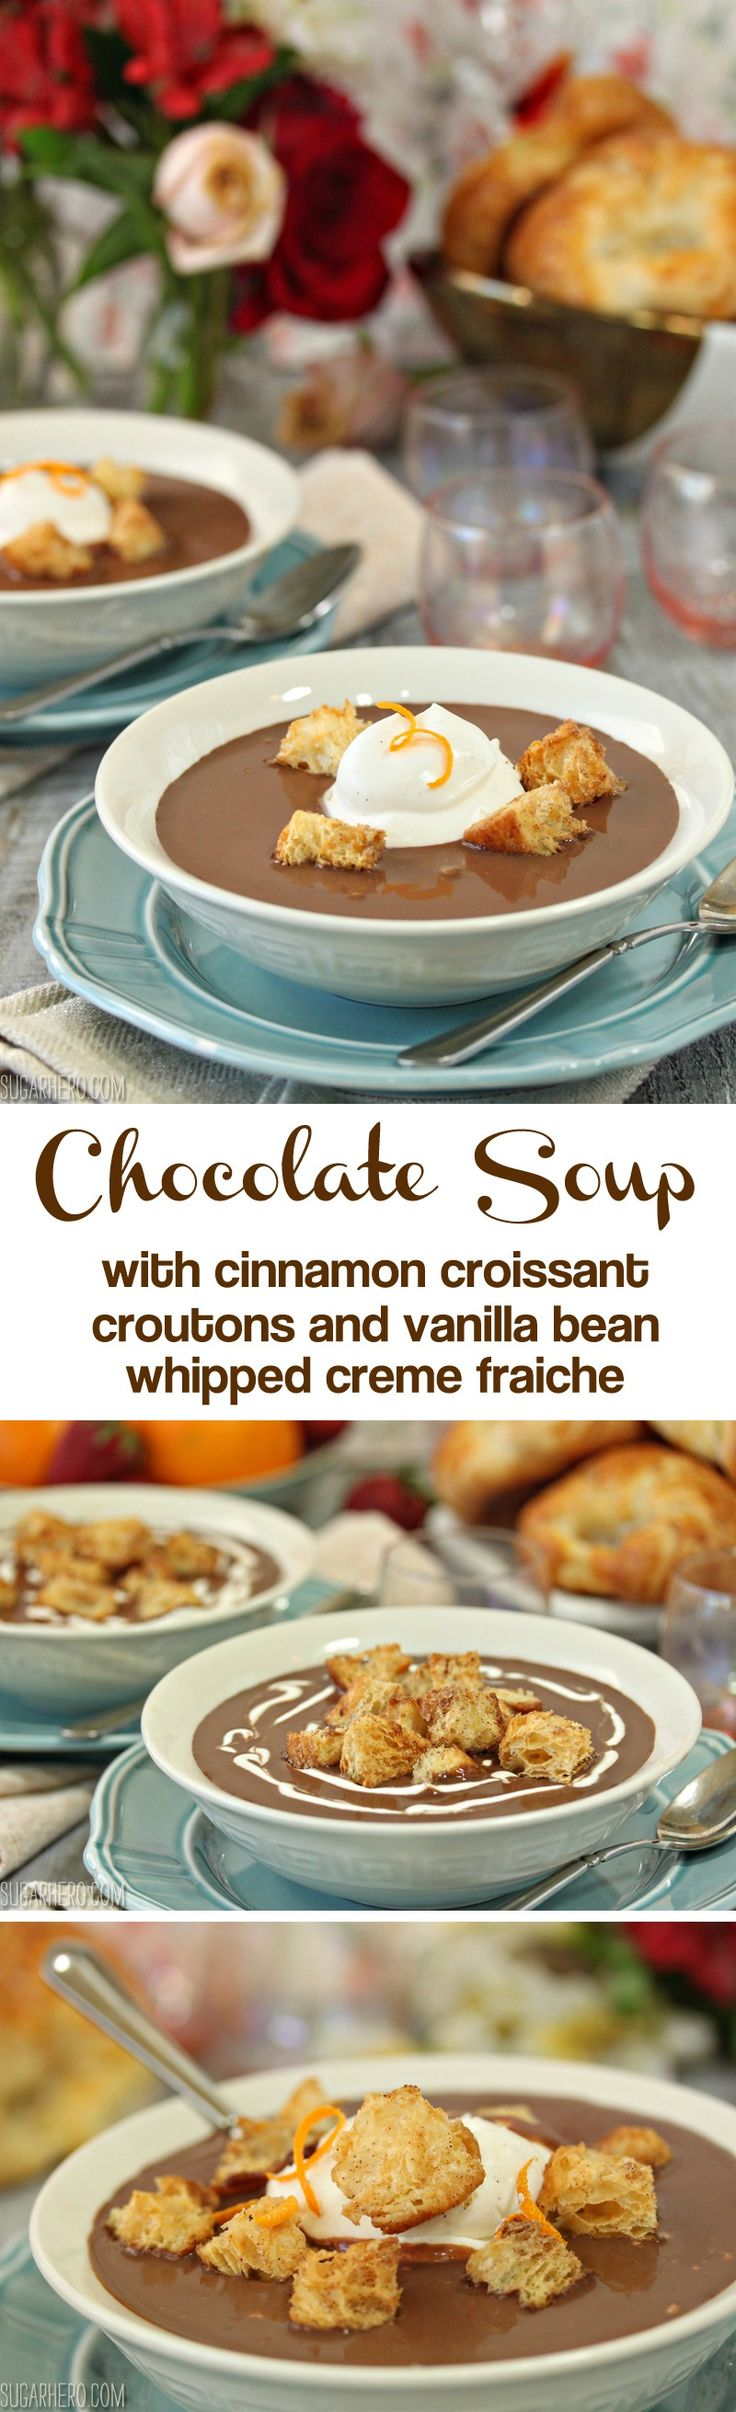 Chocolate soup! With croissant croutons and whipped creme fraiche.